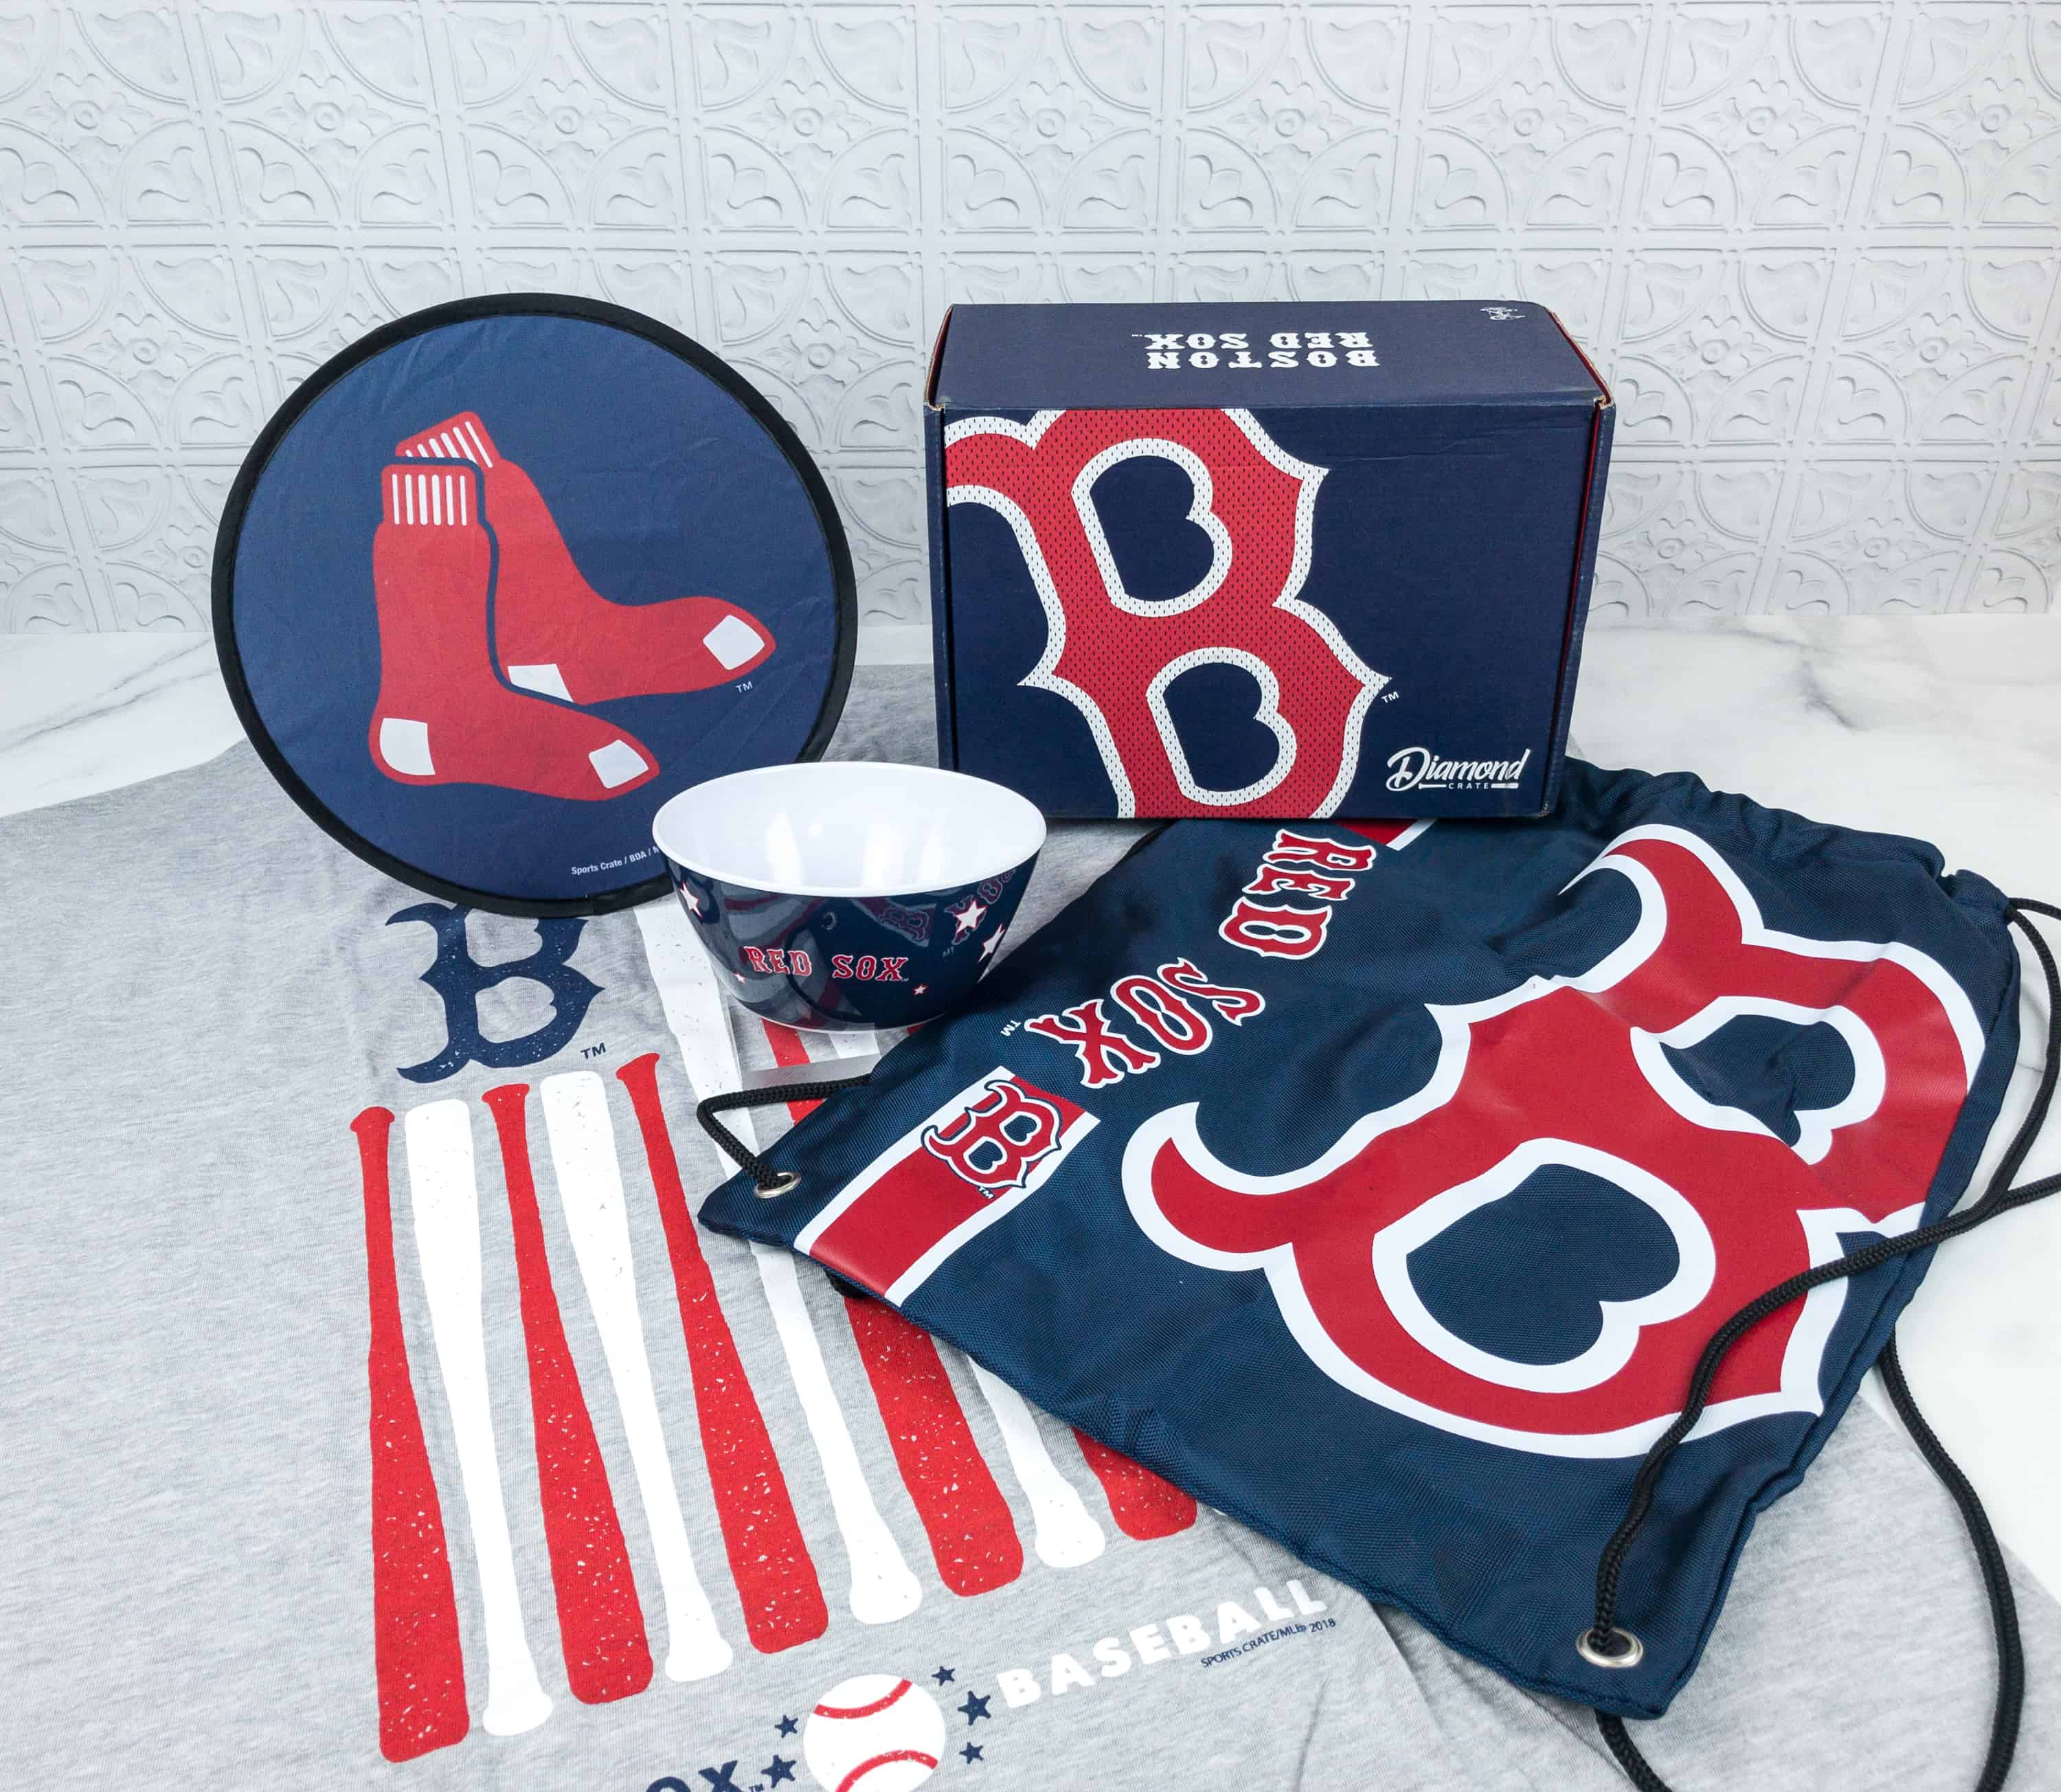 Sports Crate MLB Edition June 2018 Review + Coupon – Diamond Crate!